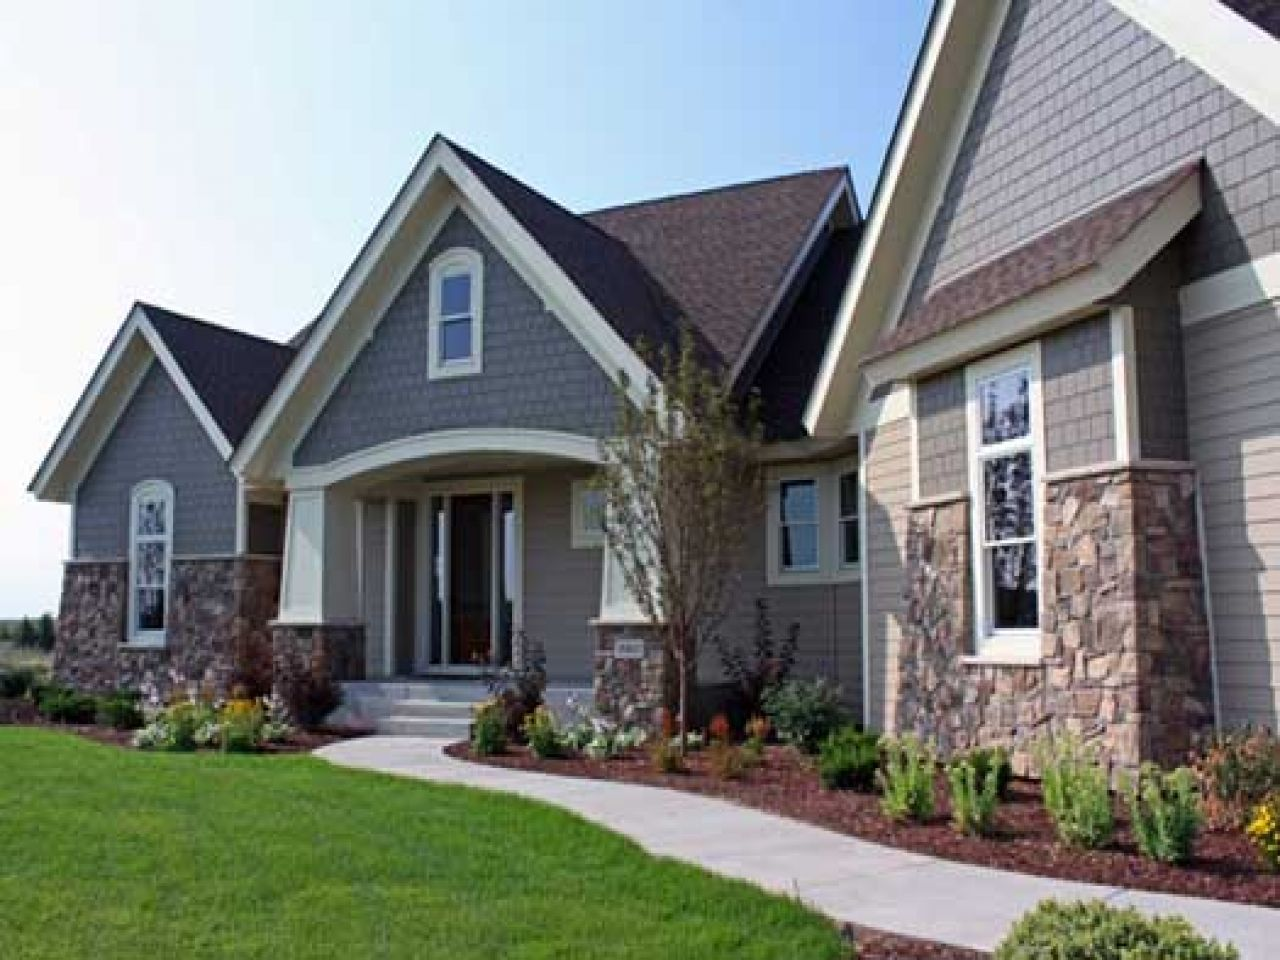 Story craftsman style homes one house plans modern contemporary